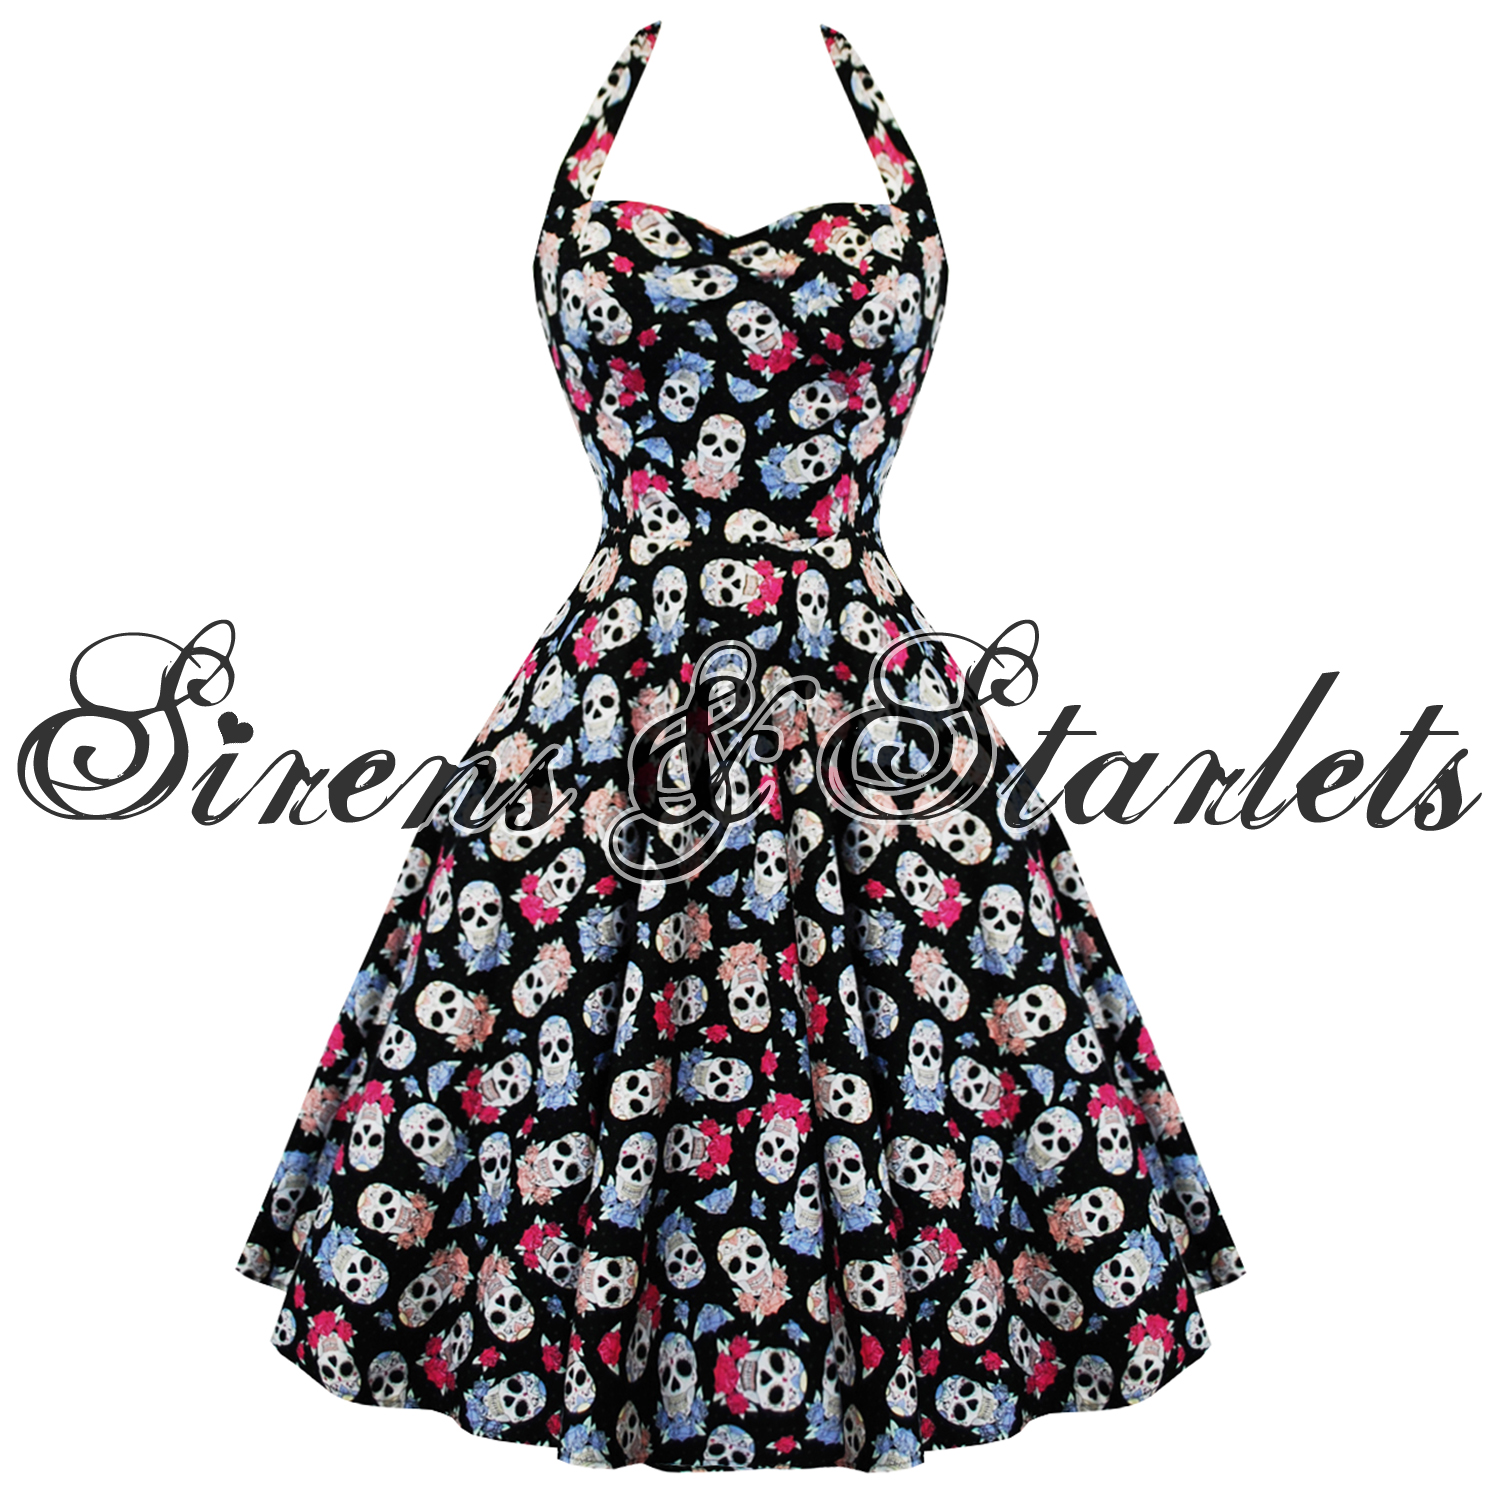 Hell Bunny Muertos Sugar Skulls Rockabilly Vintage 50s Style Party ...